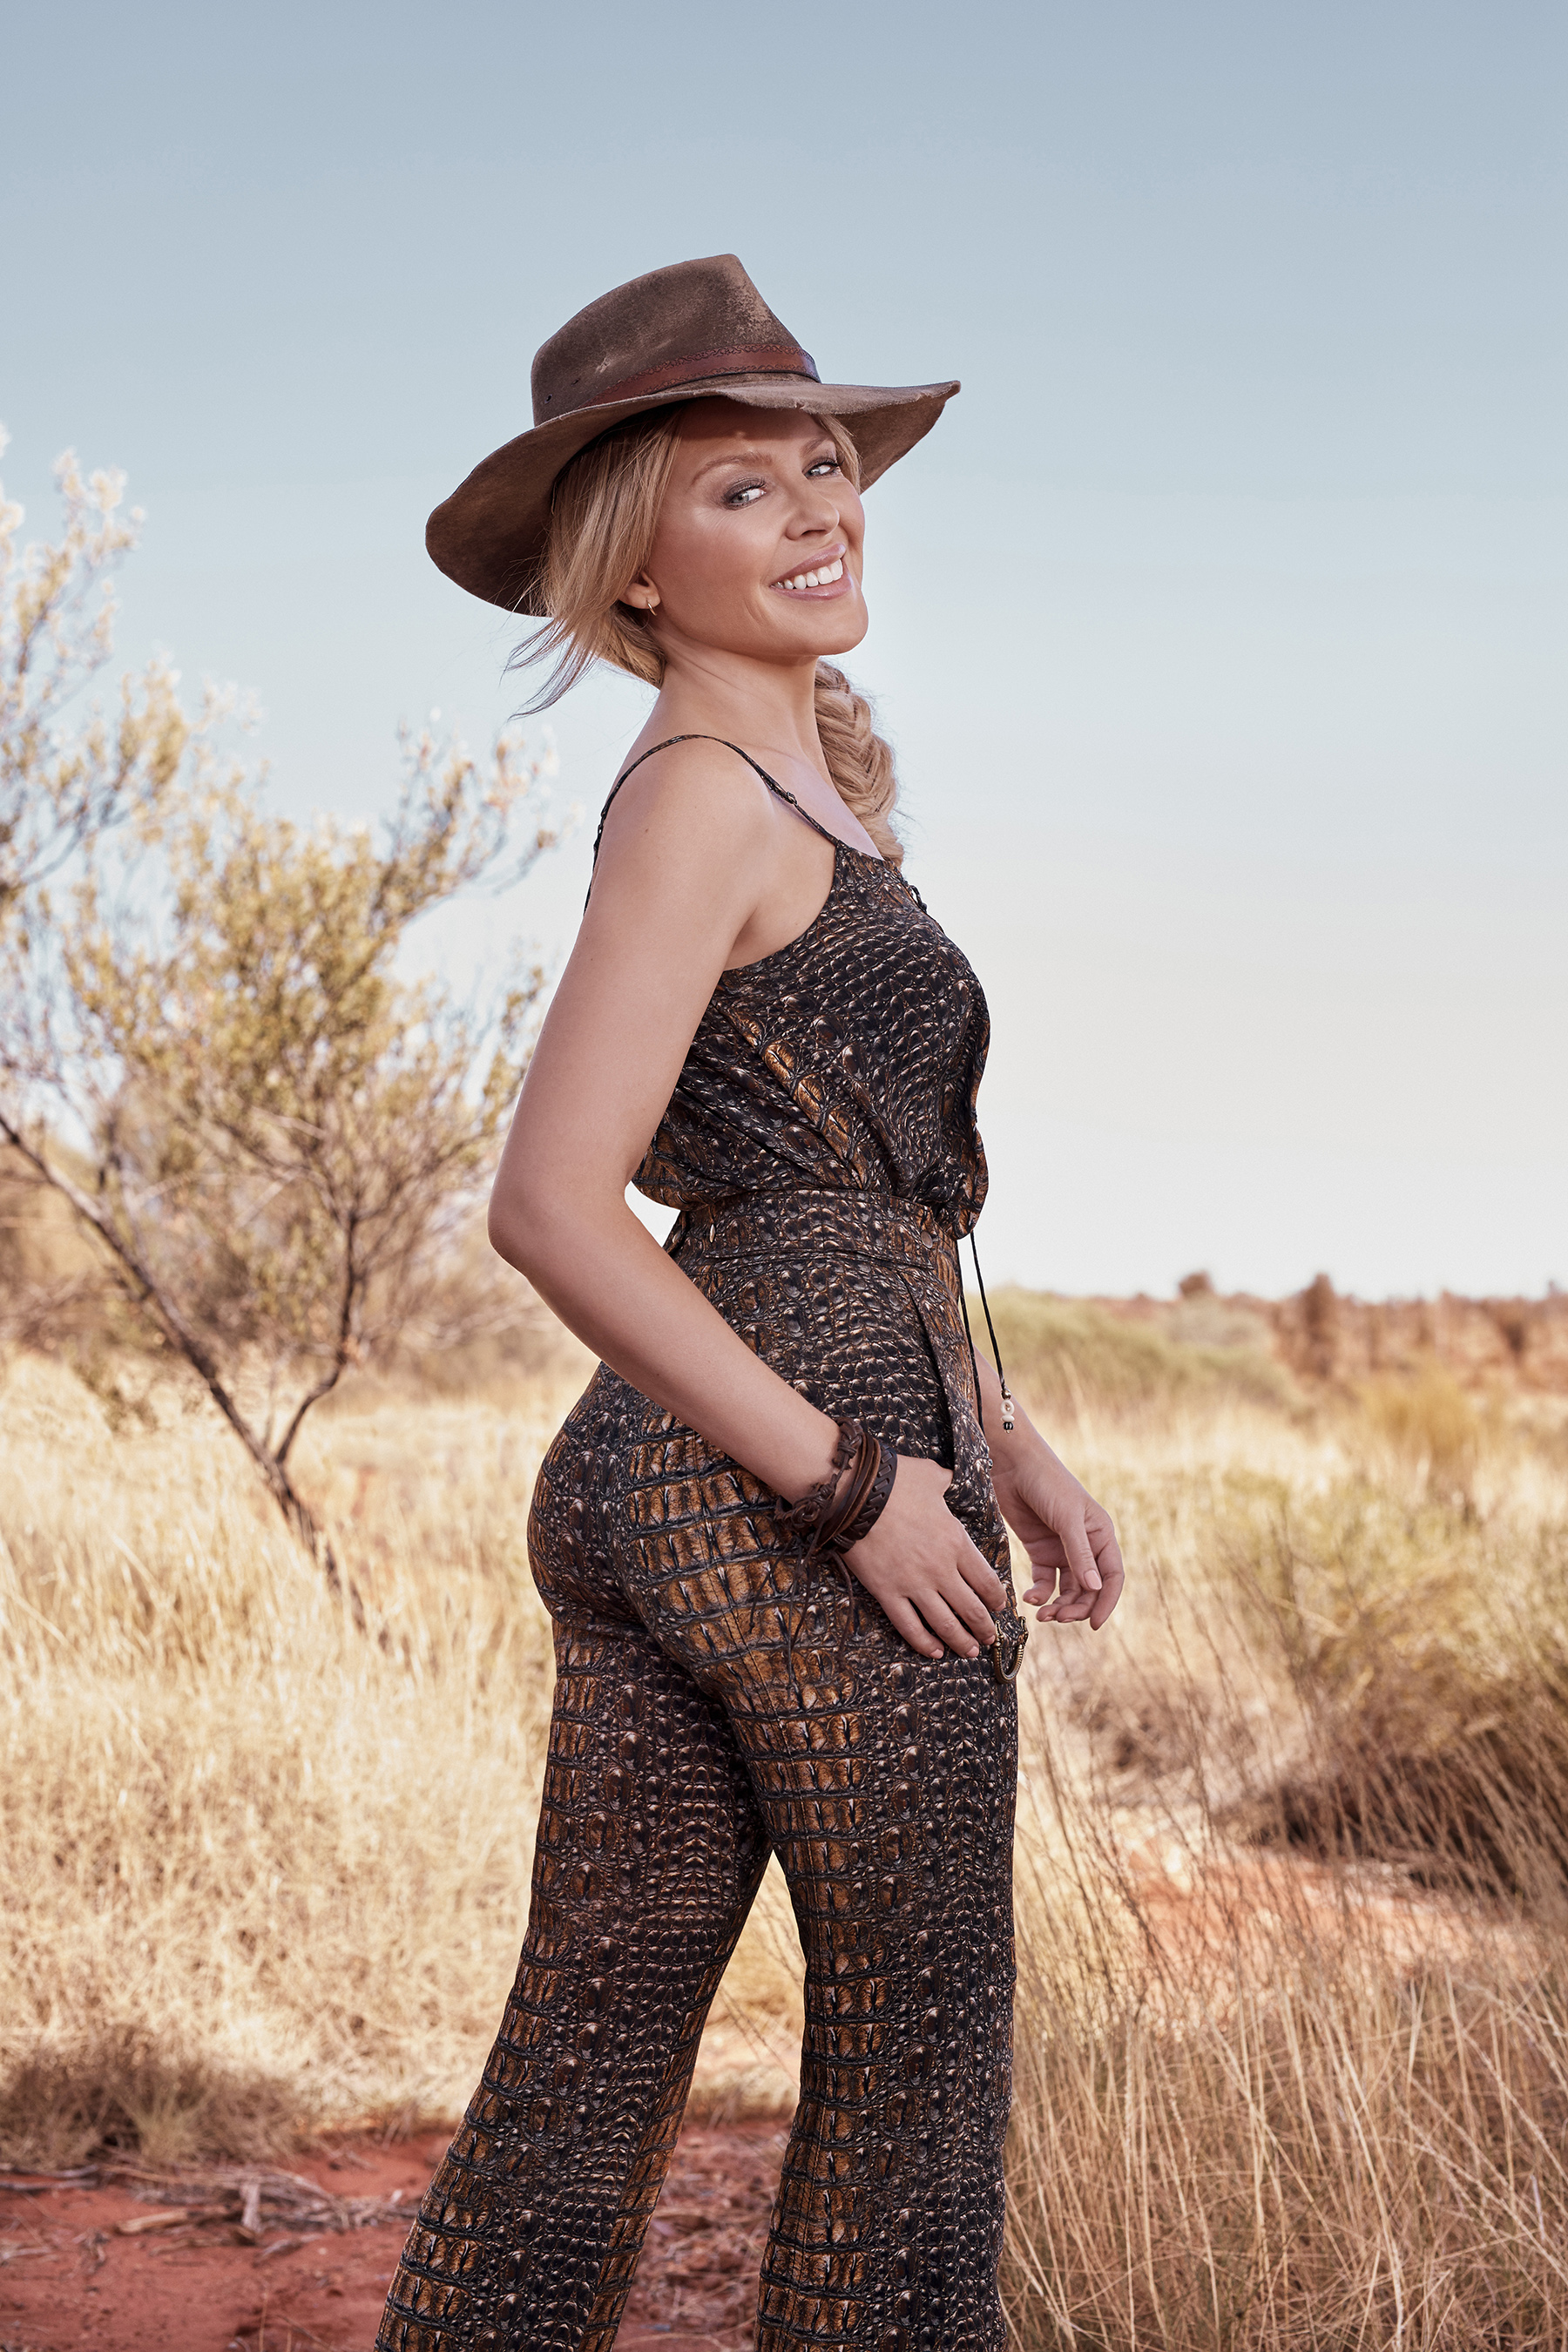 Australia S Pop Icon Kylie Minogue Invites Brits Down Under